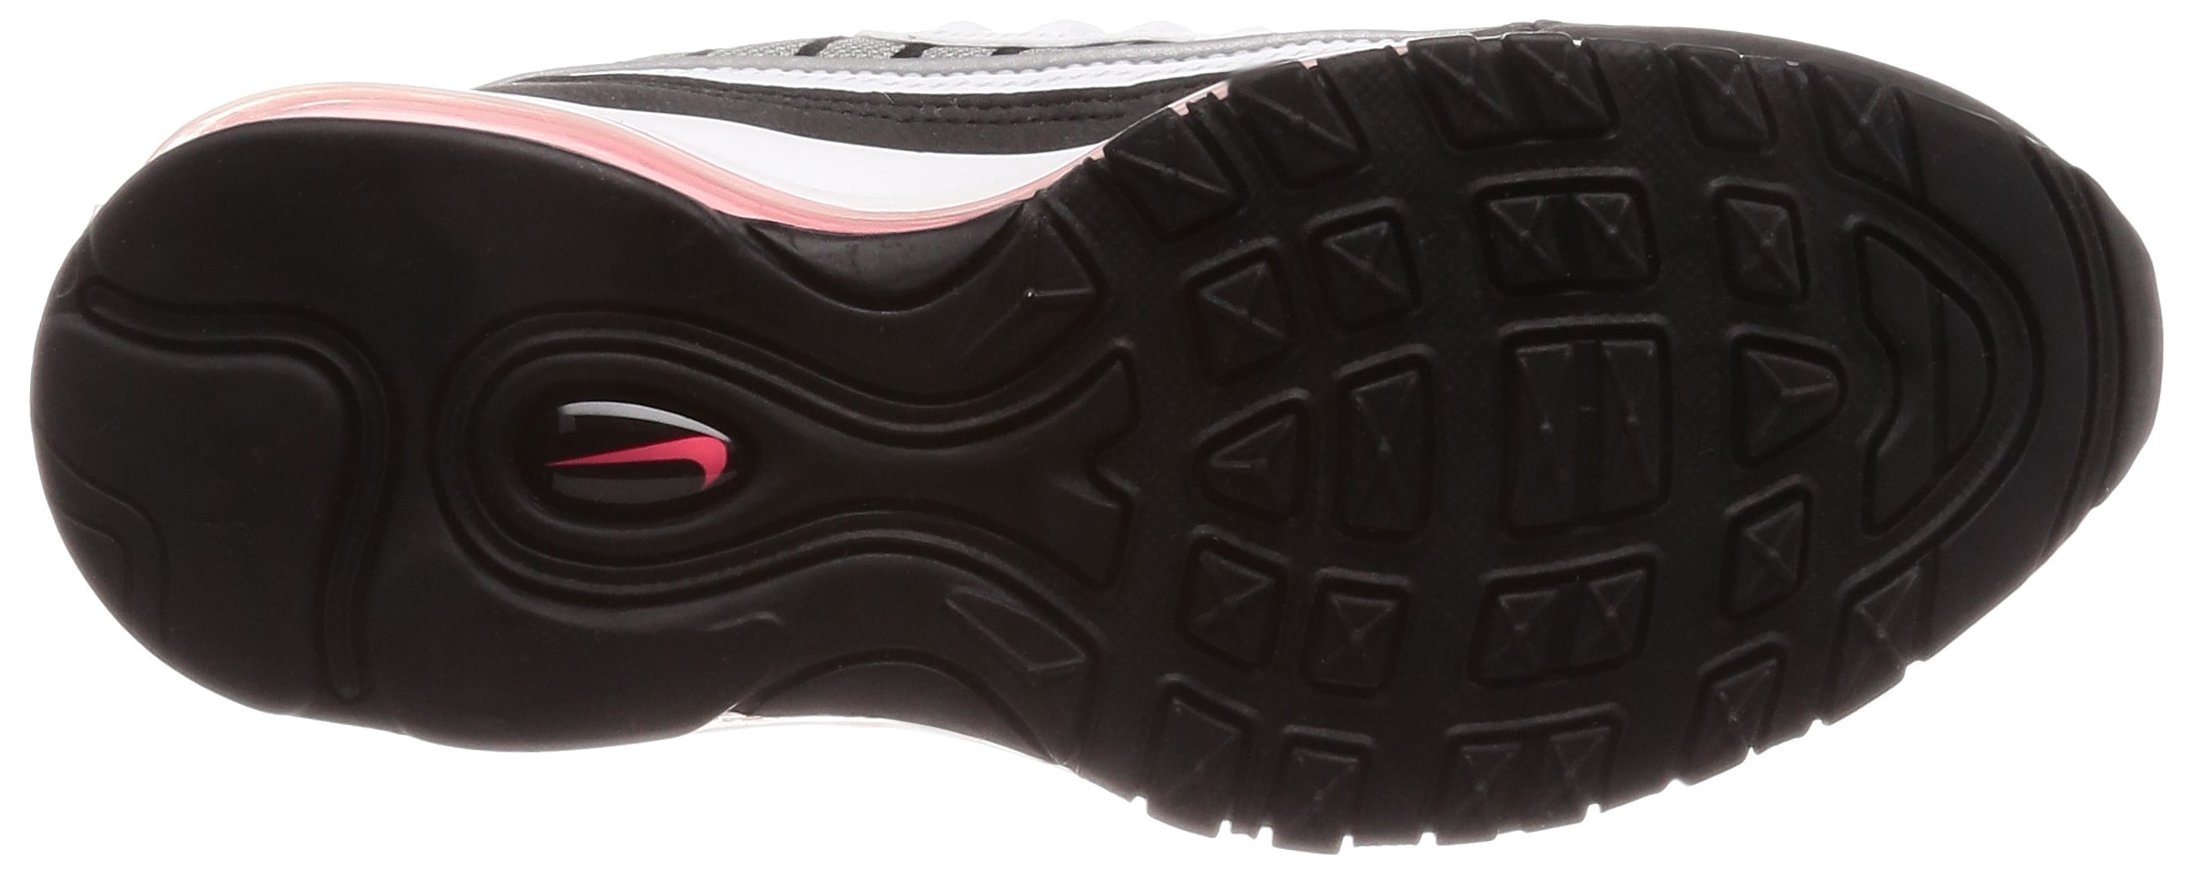 Nike Women's W Air Max 98 Running Shoes